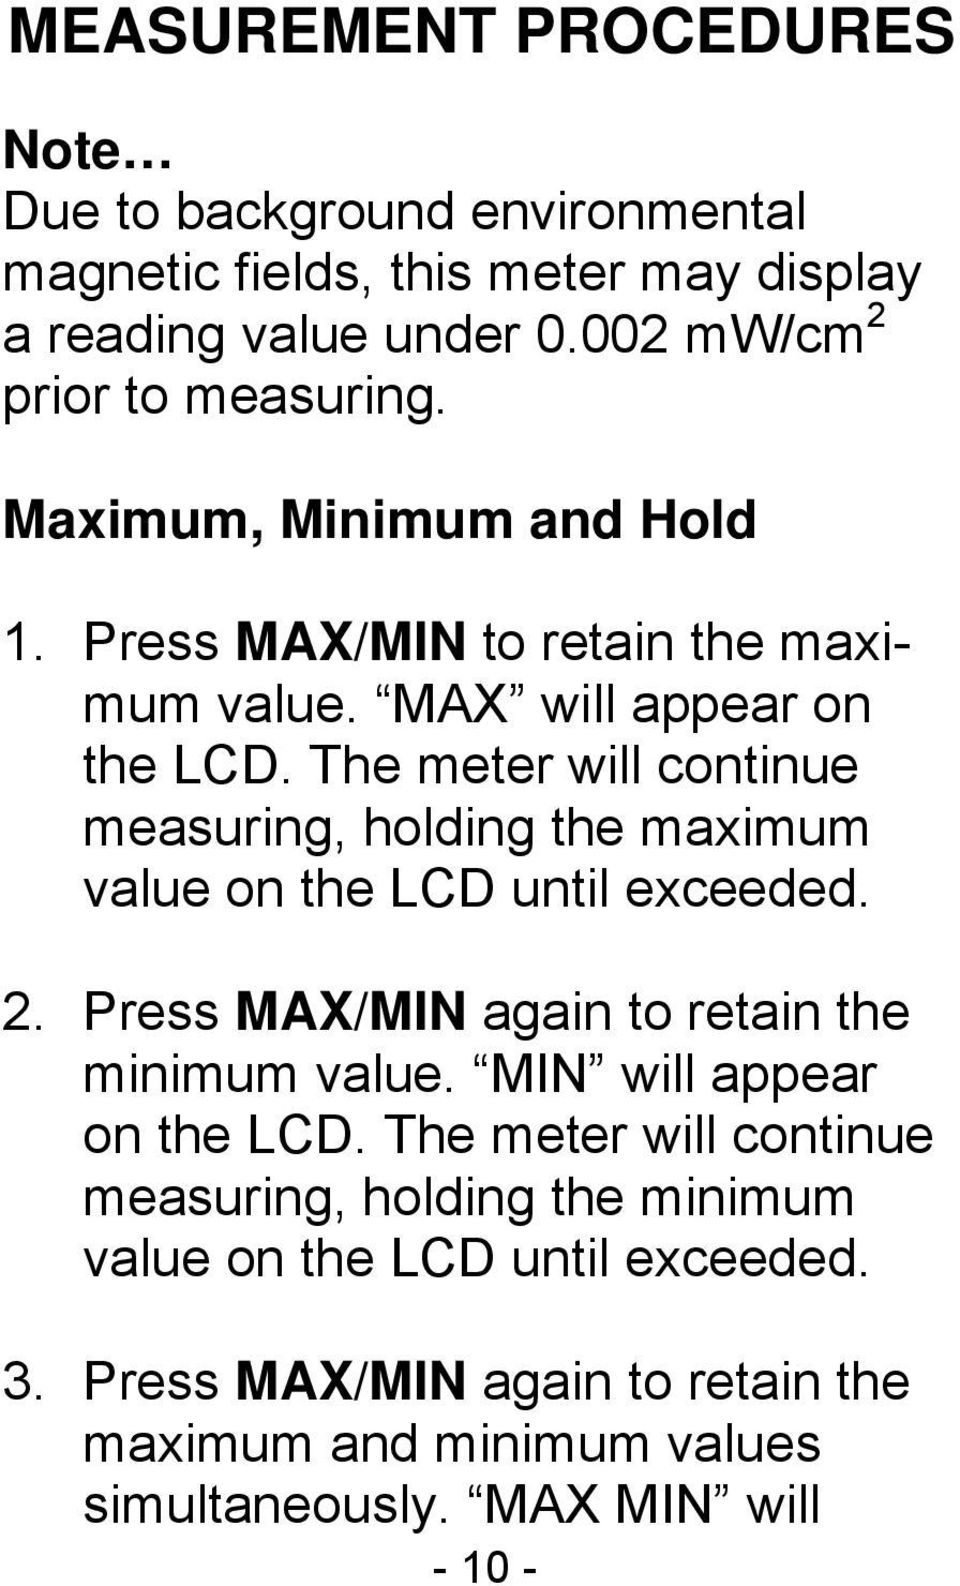 The meter will continue measuring, holding the maximum value on the LCD until exceeded. 2. Press MAX/MIN again to retain the minimum value.